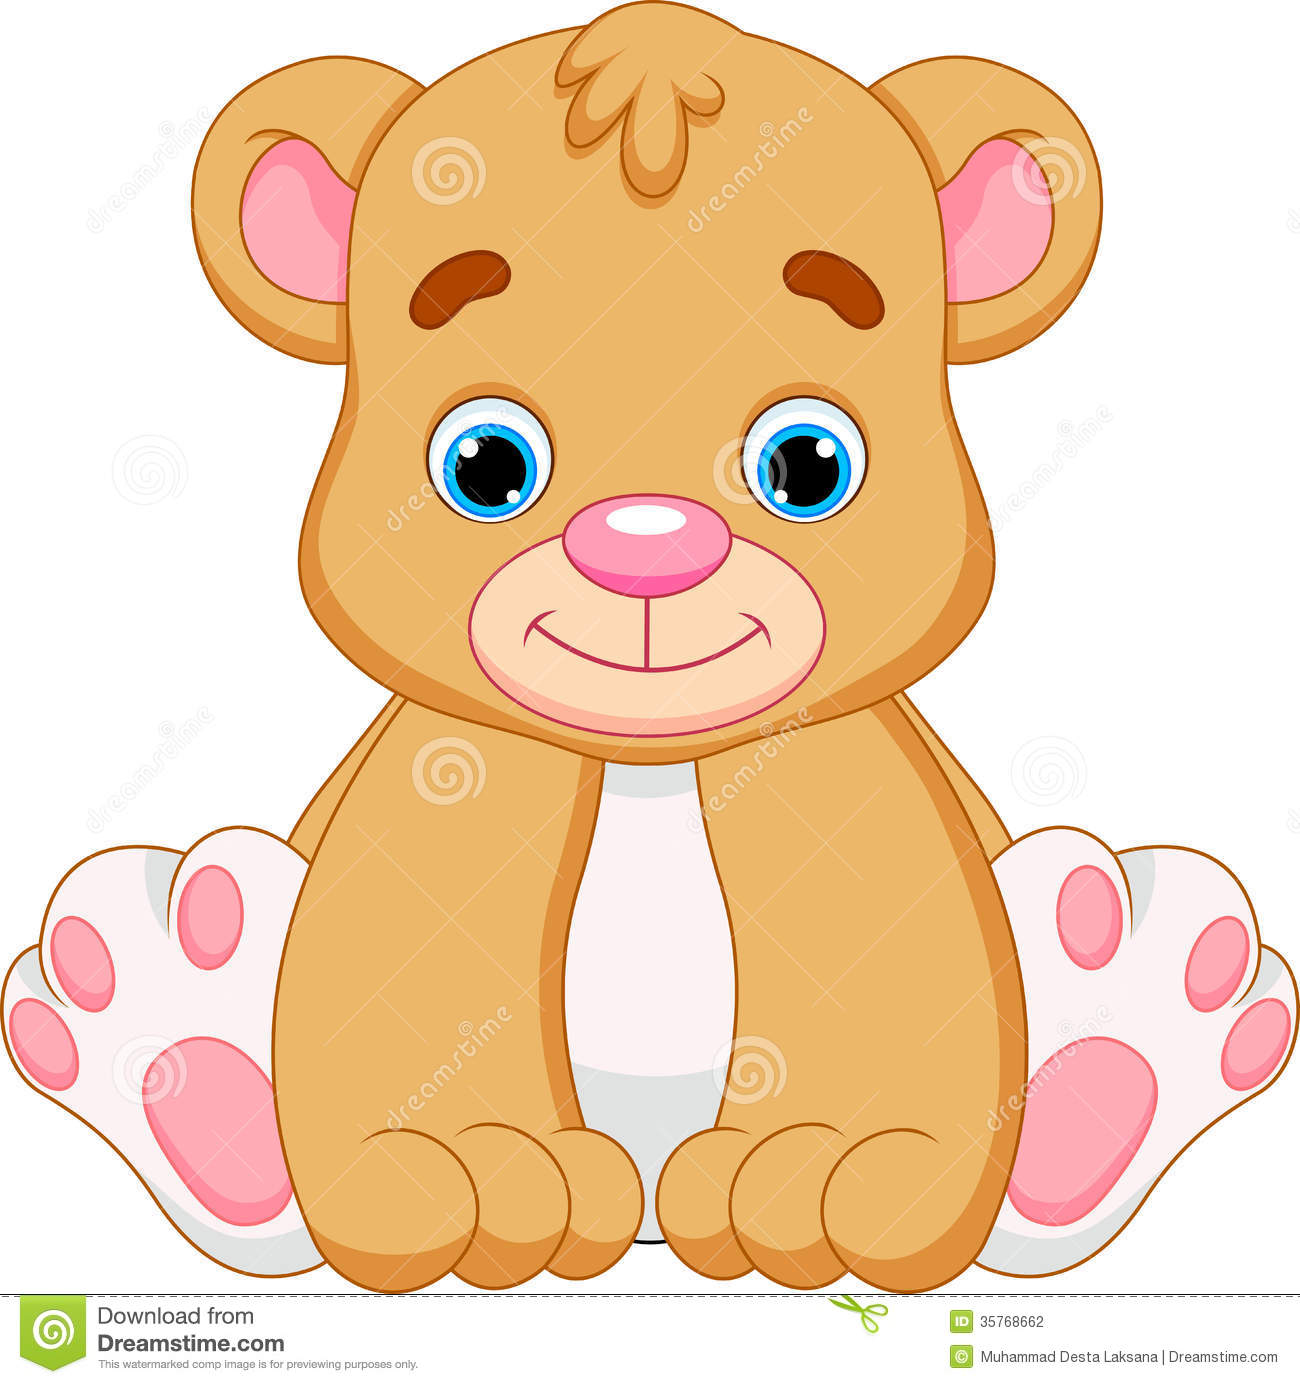 cute baby bear cartoon stock illustration illustration of rh dreamstime com Cute Cartoon Bear Cub images of cute cartoon teddy bears